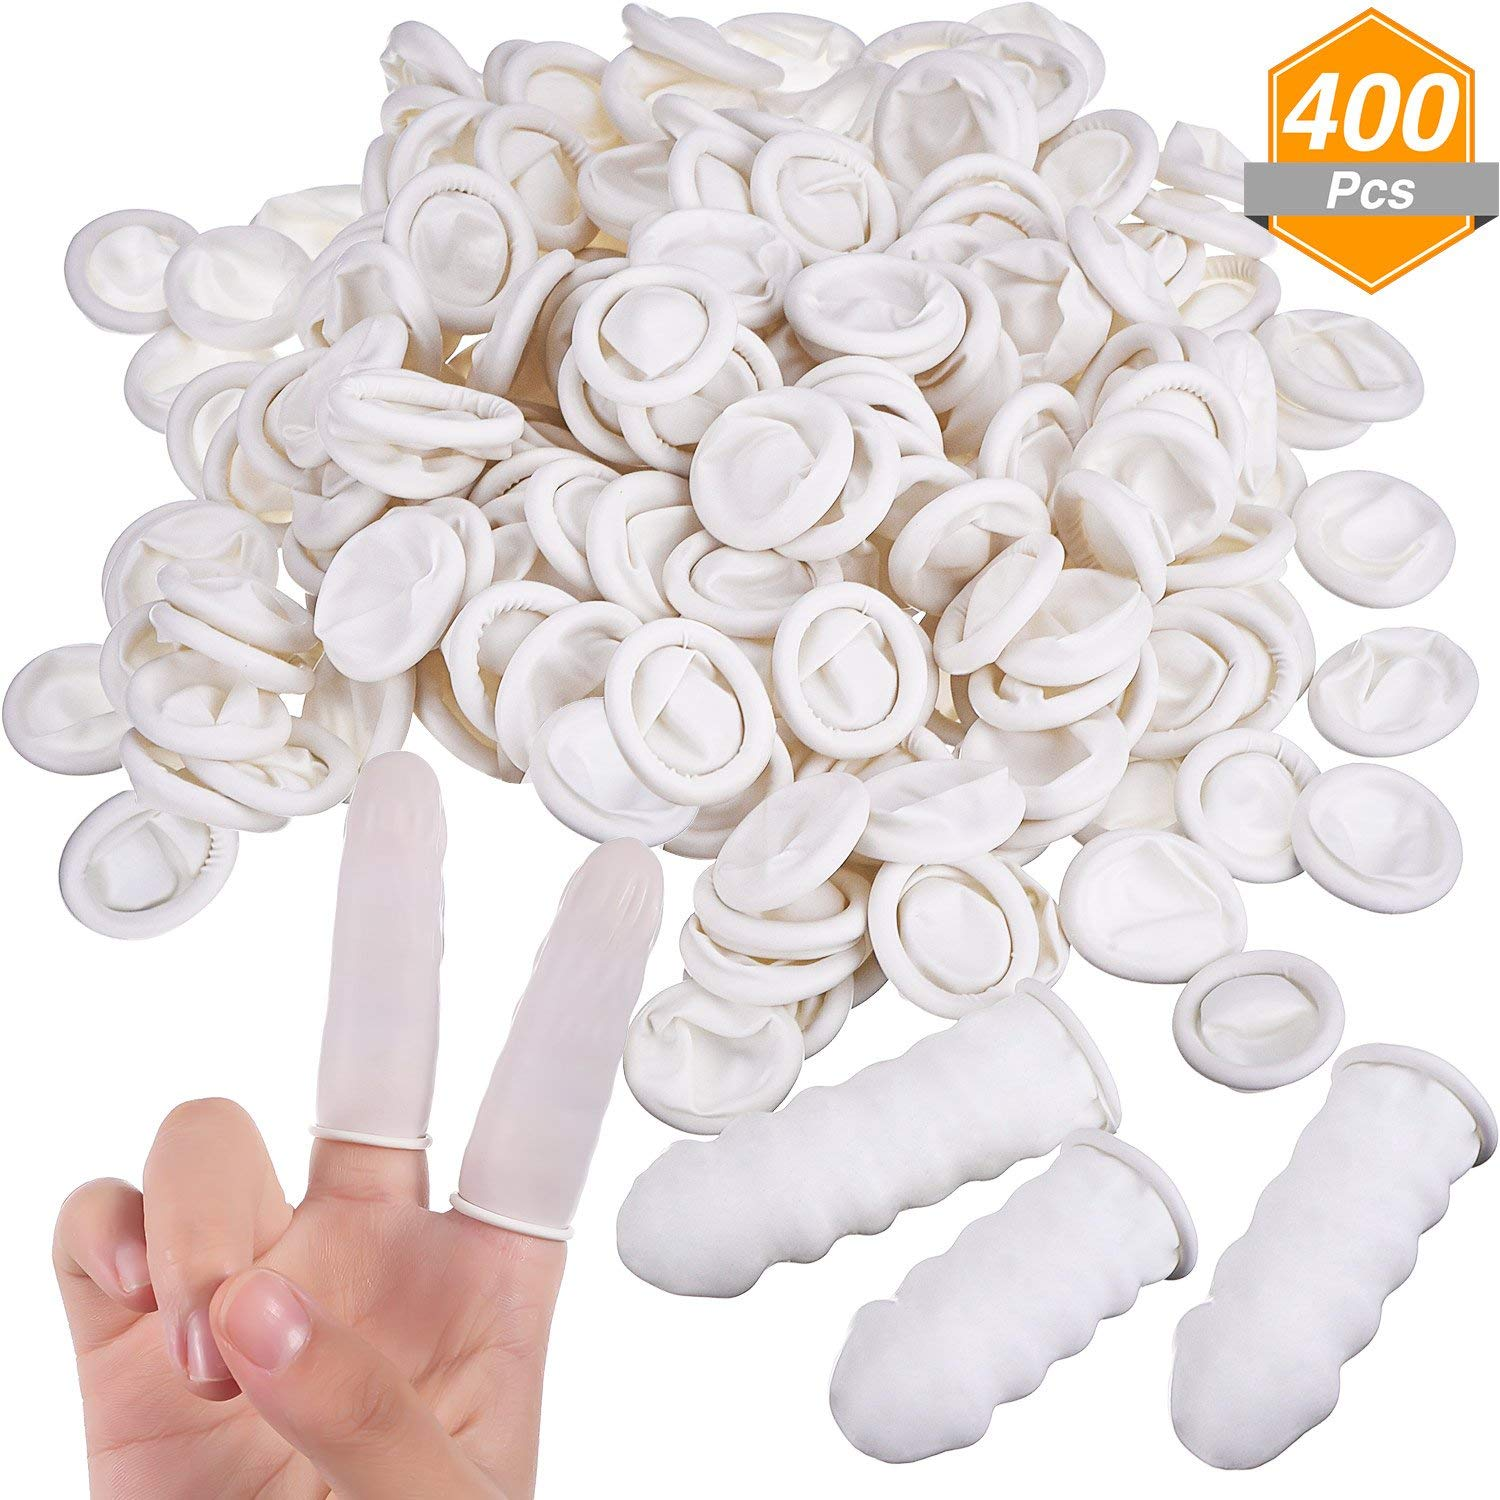 Buy Wholesale medical latex finger cots/milky white rubber